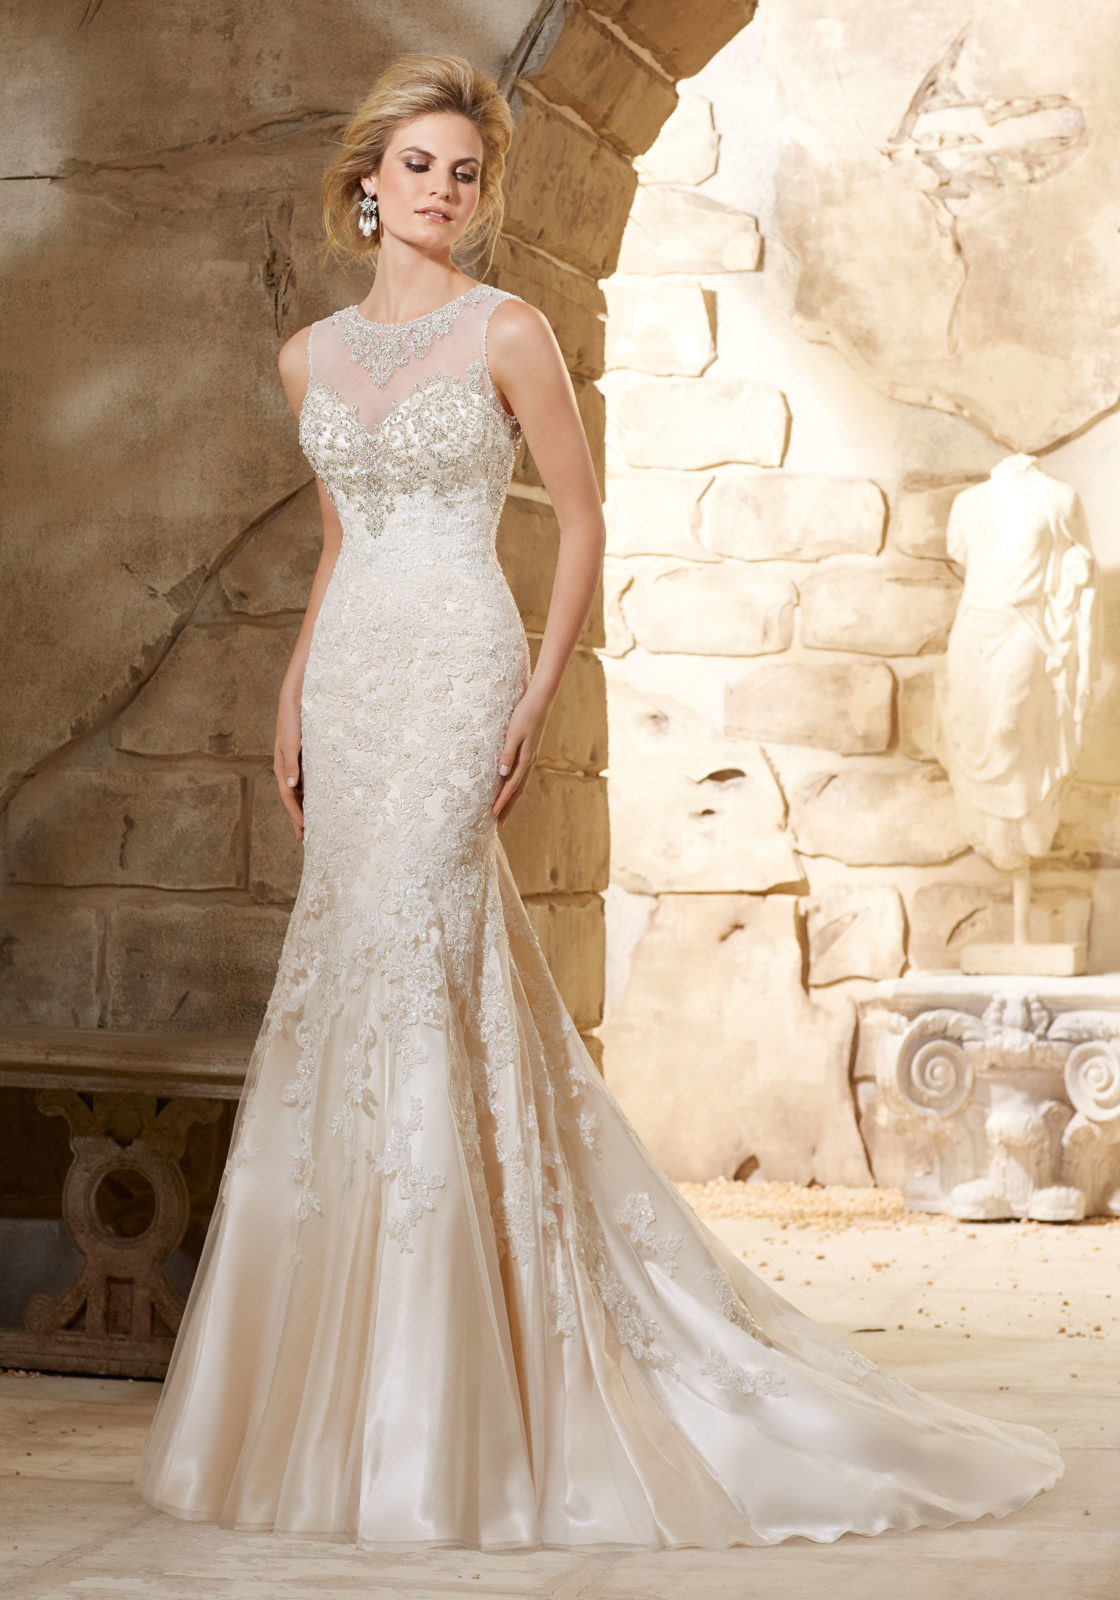 Lace Wedding Gowns  Beaded Bodice on Lace over Soft Satin Bridal Gown